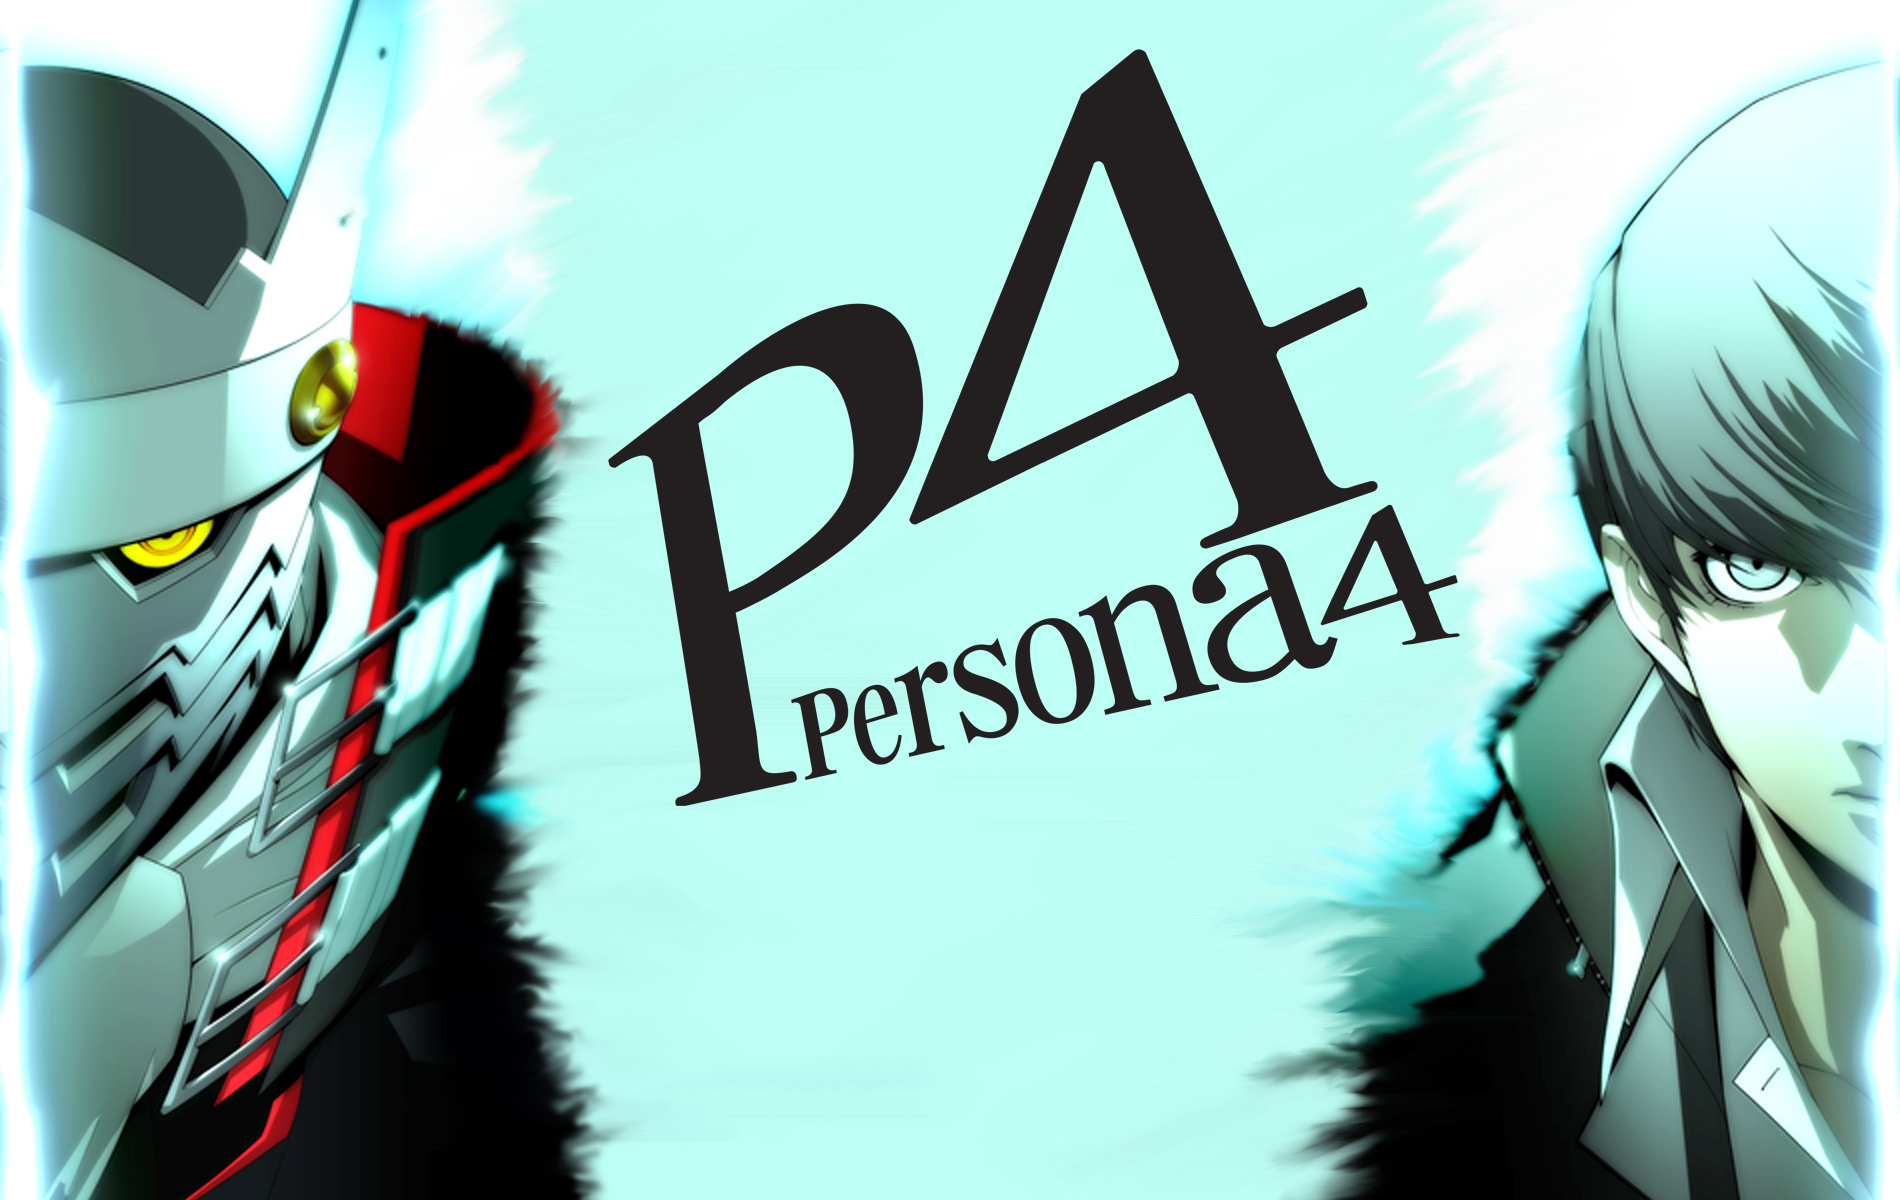 persona HD Wallpaper